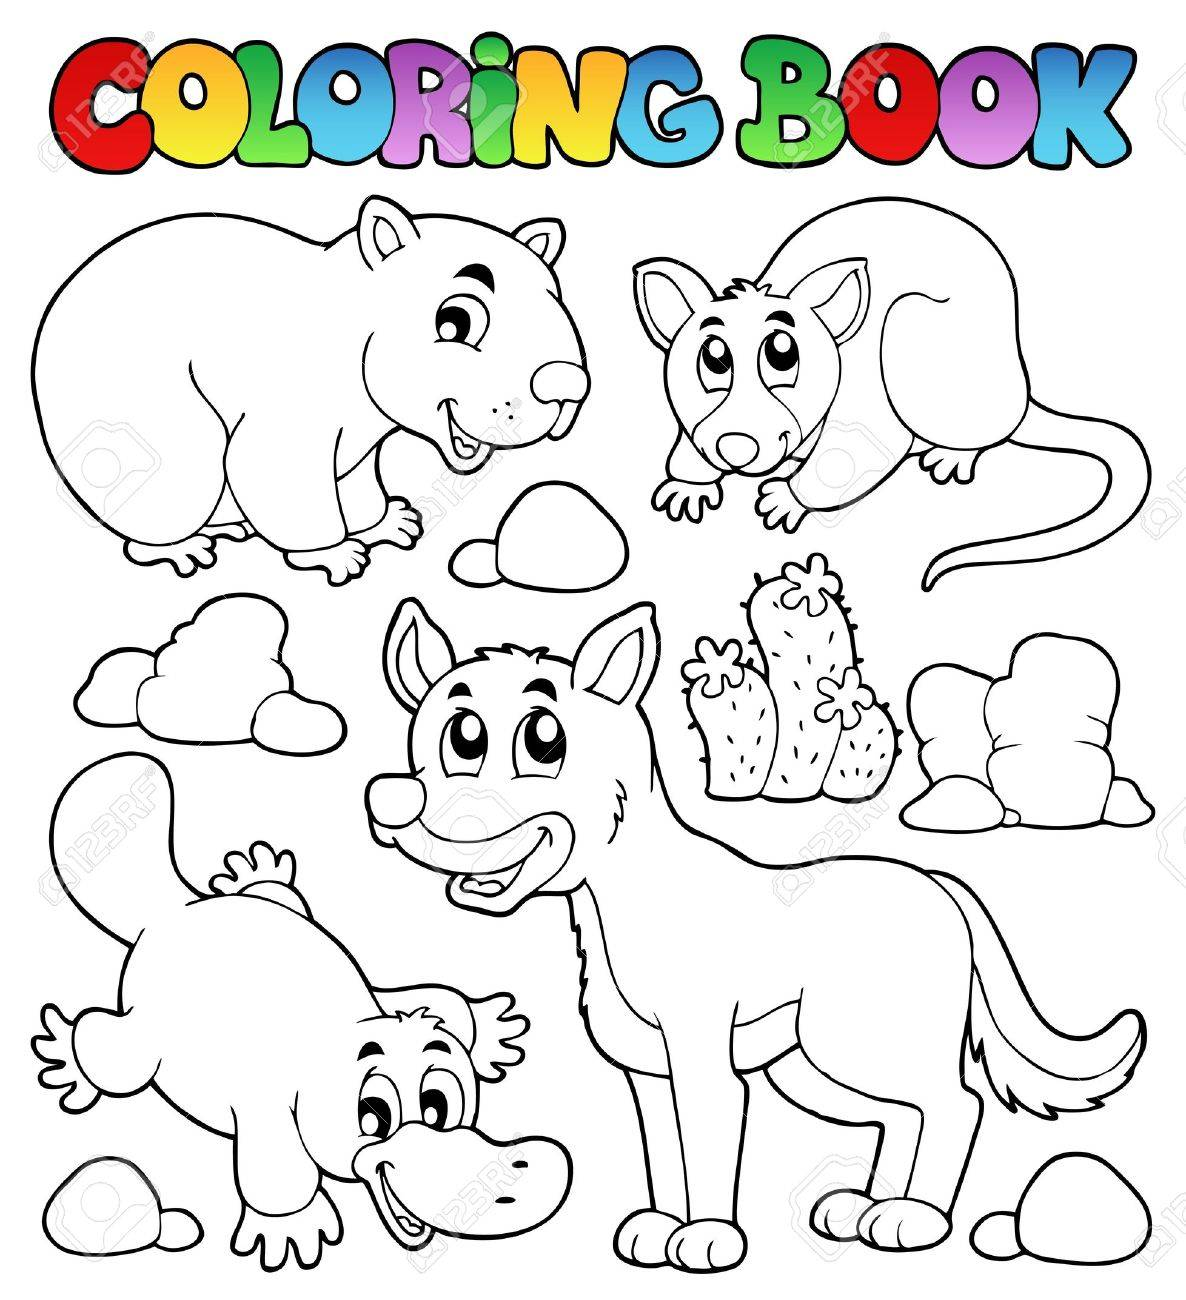 The zoology coloring book - Coloring Book Australian Fauna 1 Vector Illustration Stock Vector 16503874